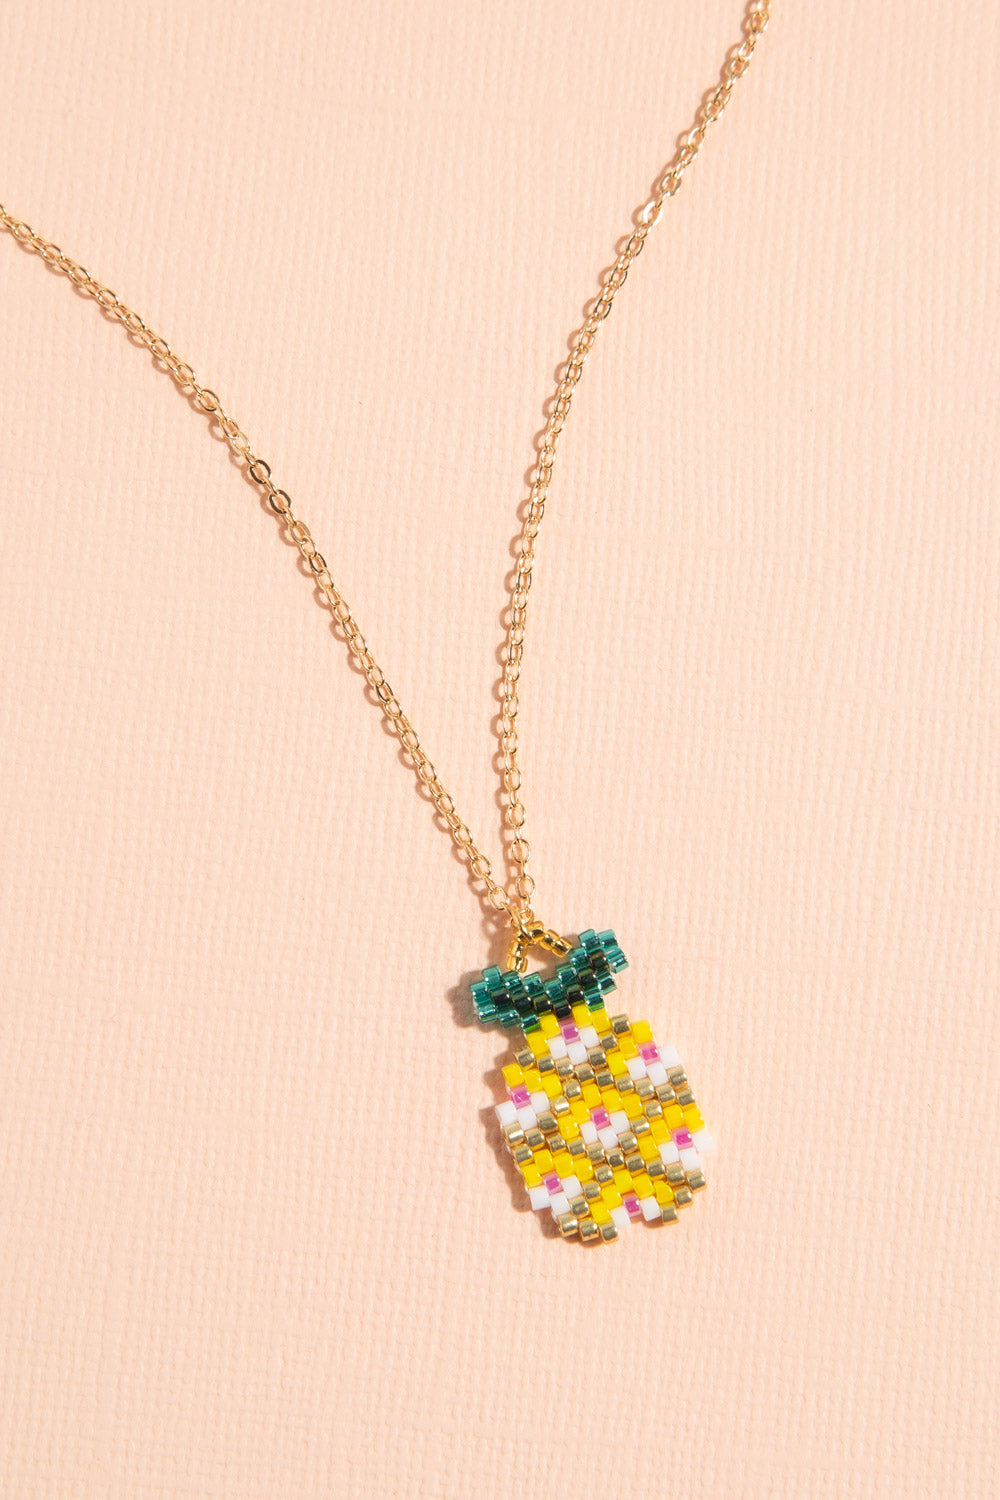 Type 1 Pineapple of My Eye Necklace